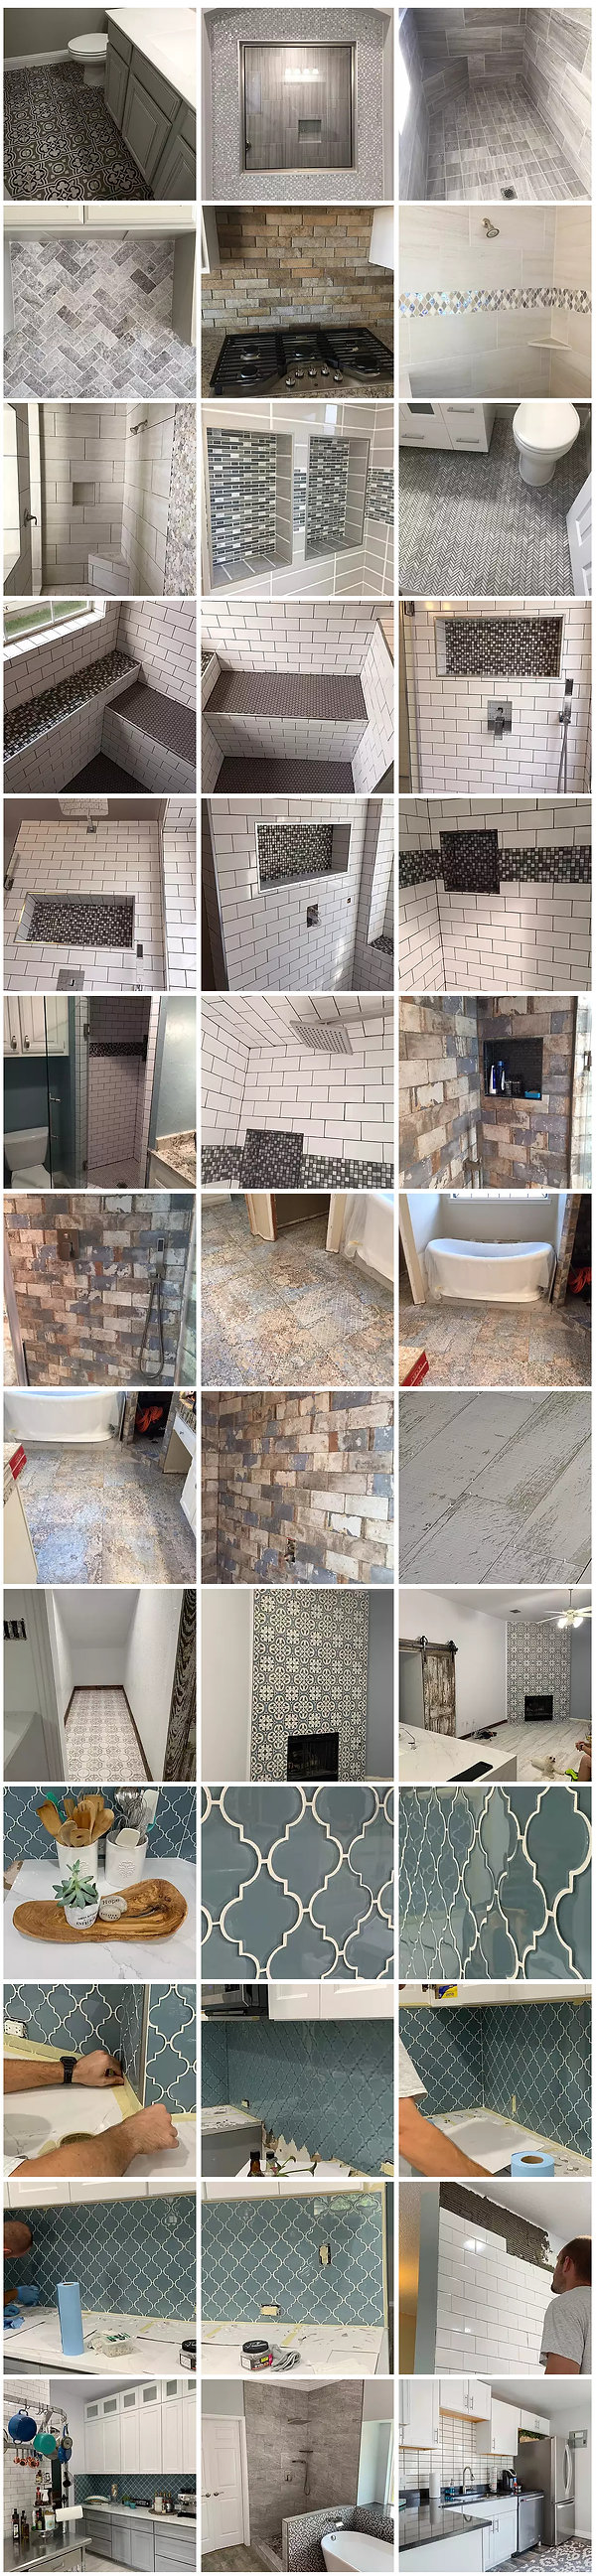 the-redoux-custom-tile-work-flooring-bat